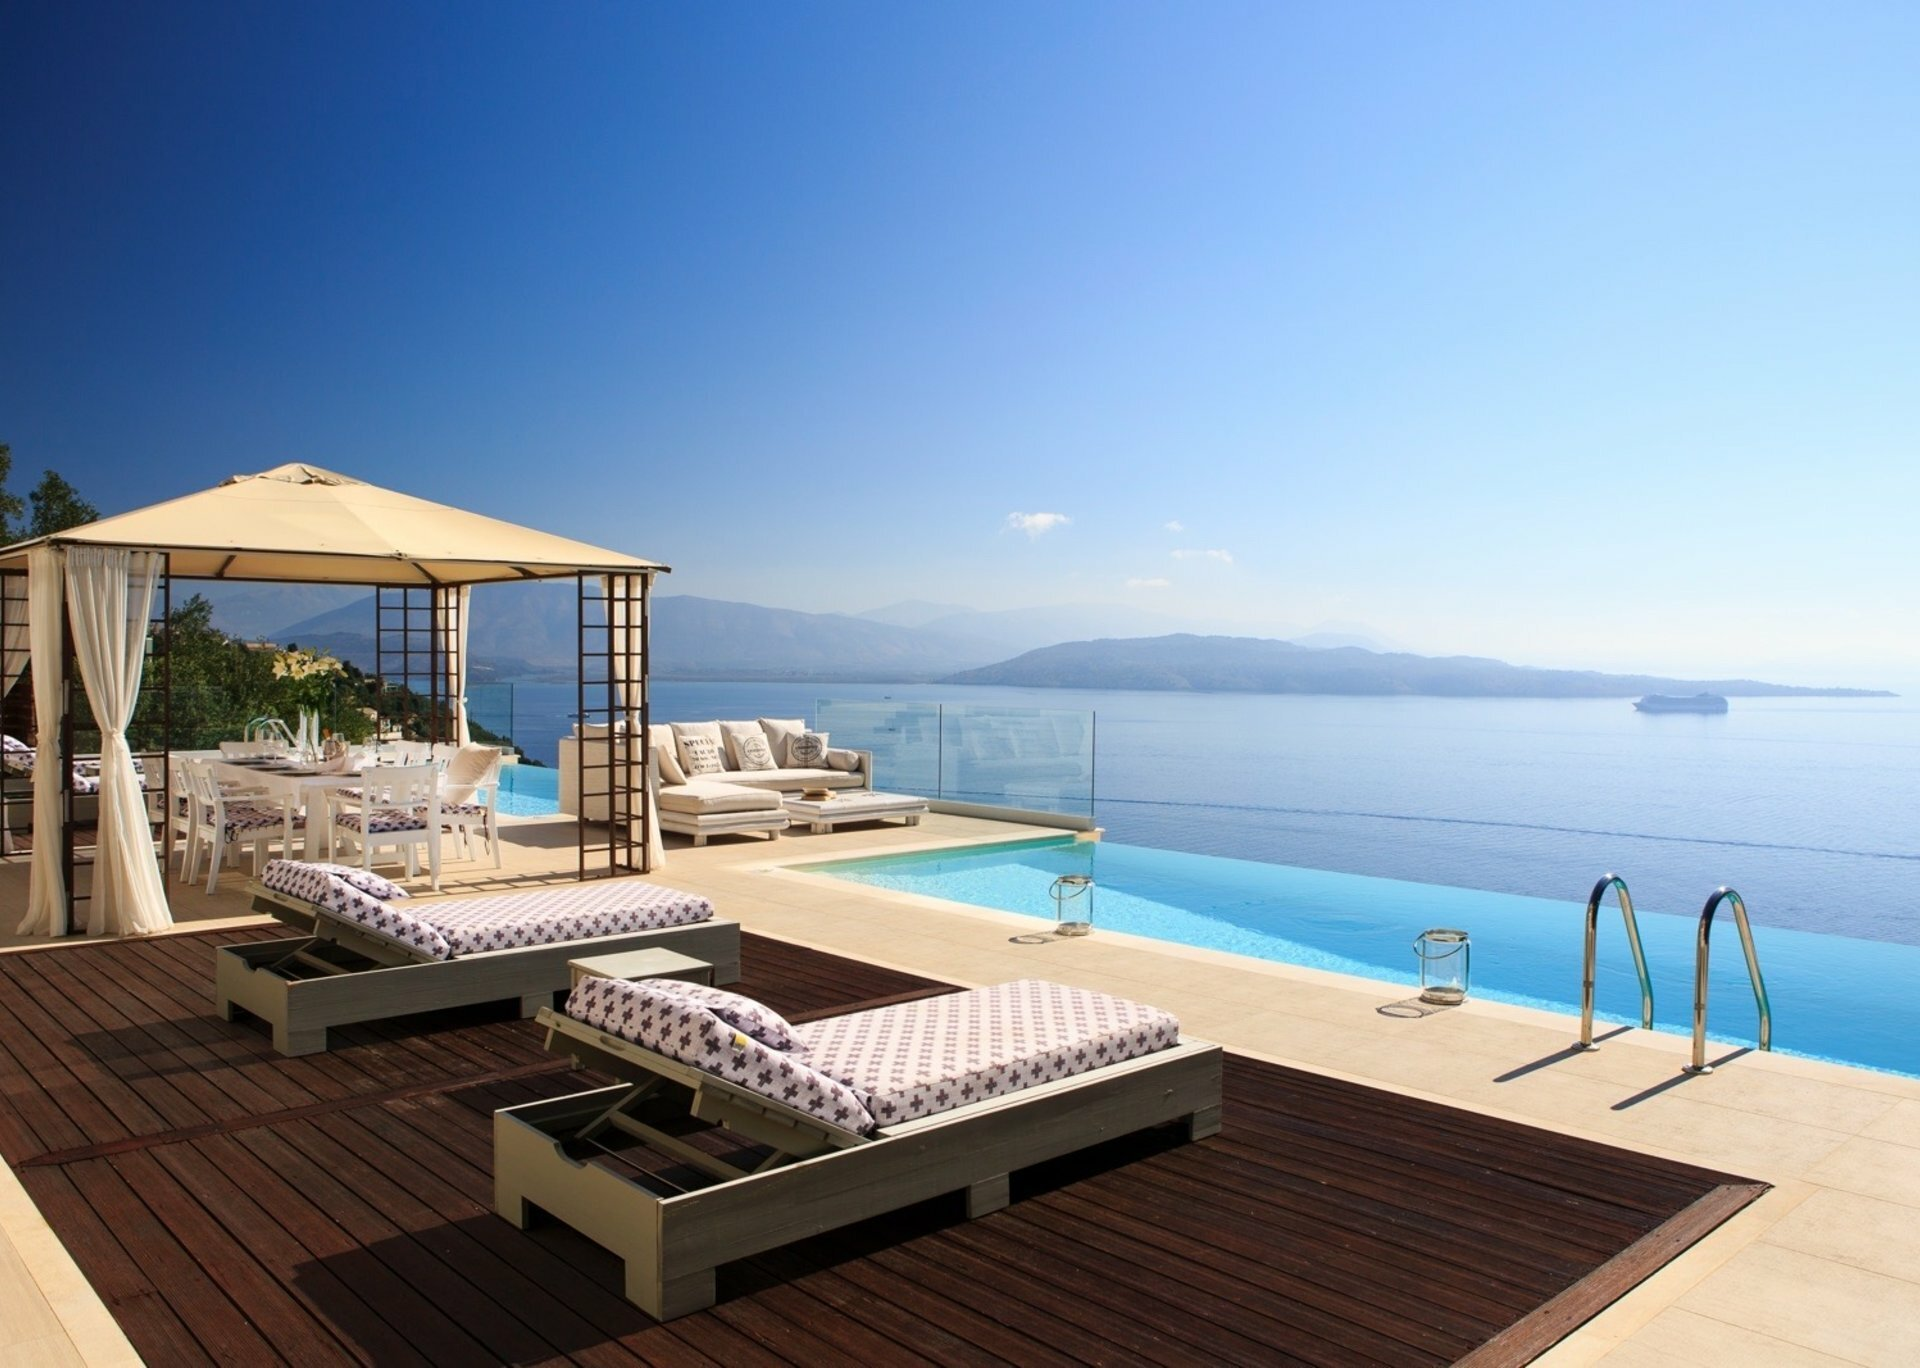 Villa in Corfu, Decentralized Administration of Peloponnese, Western Greece and the Ionian, Greece 1 - 11512702